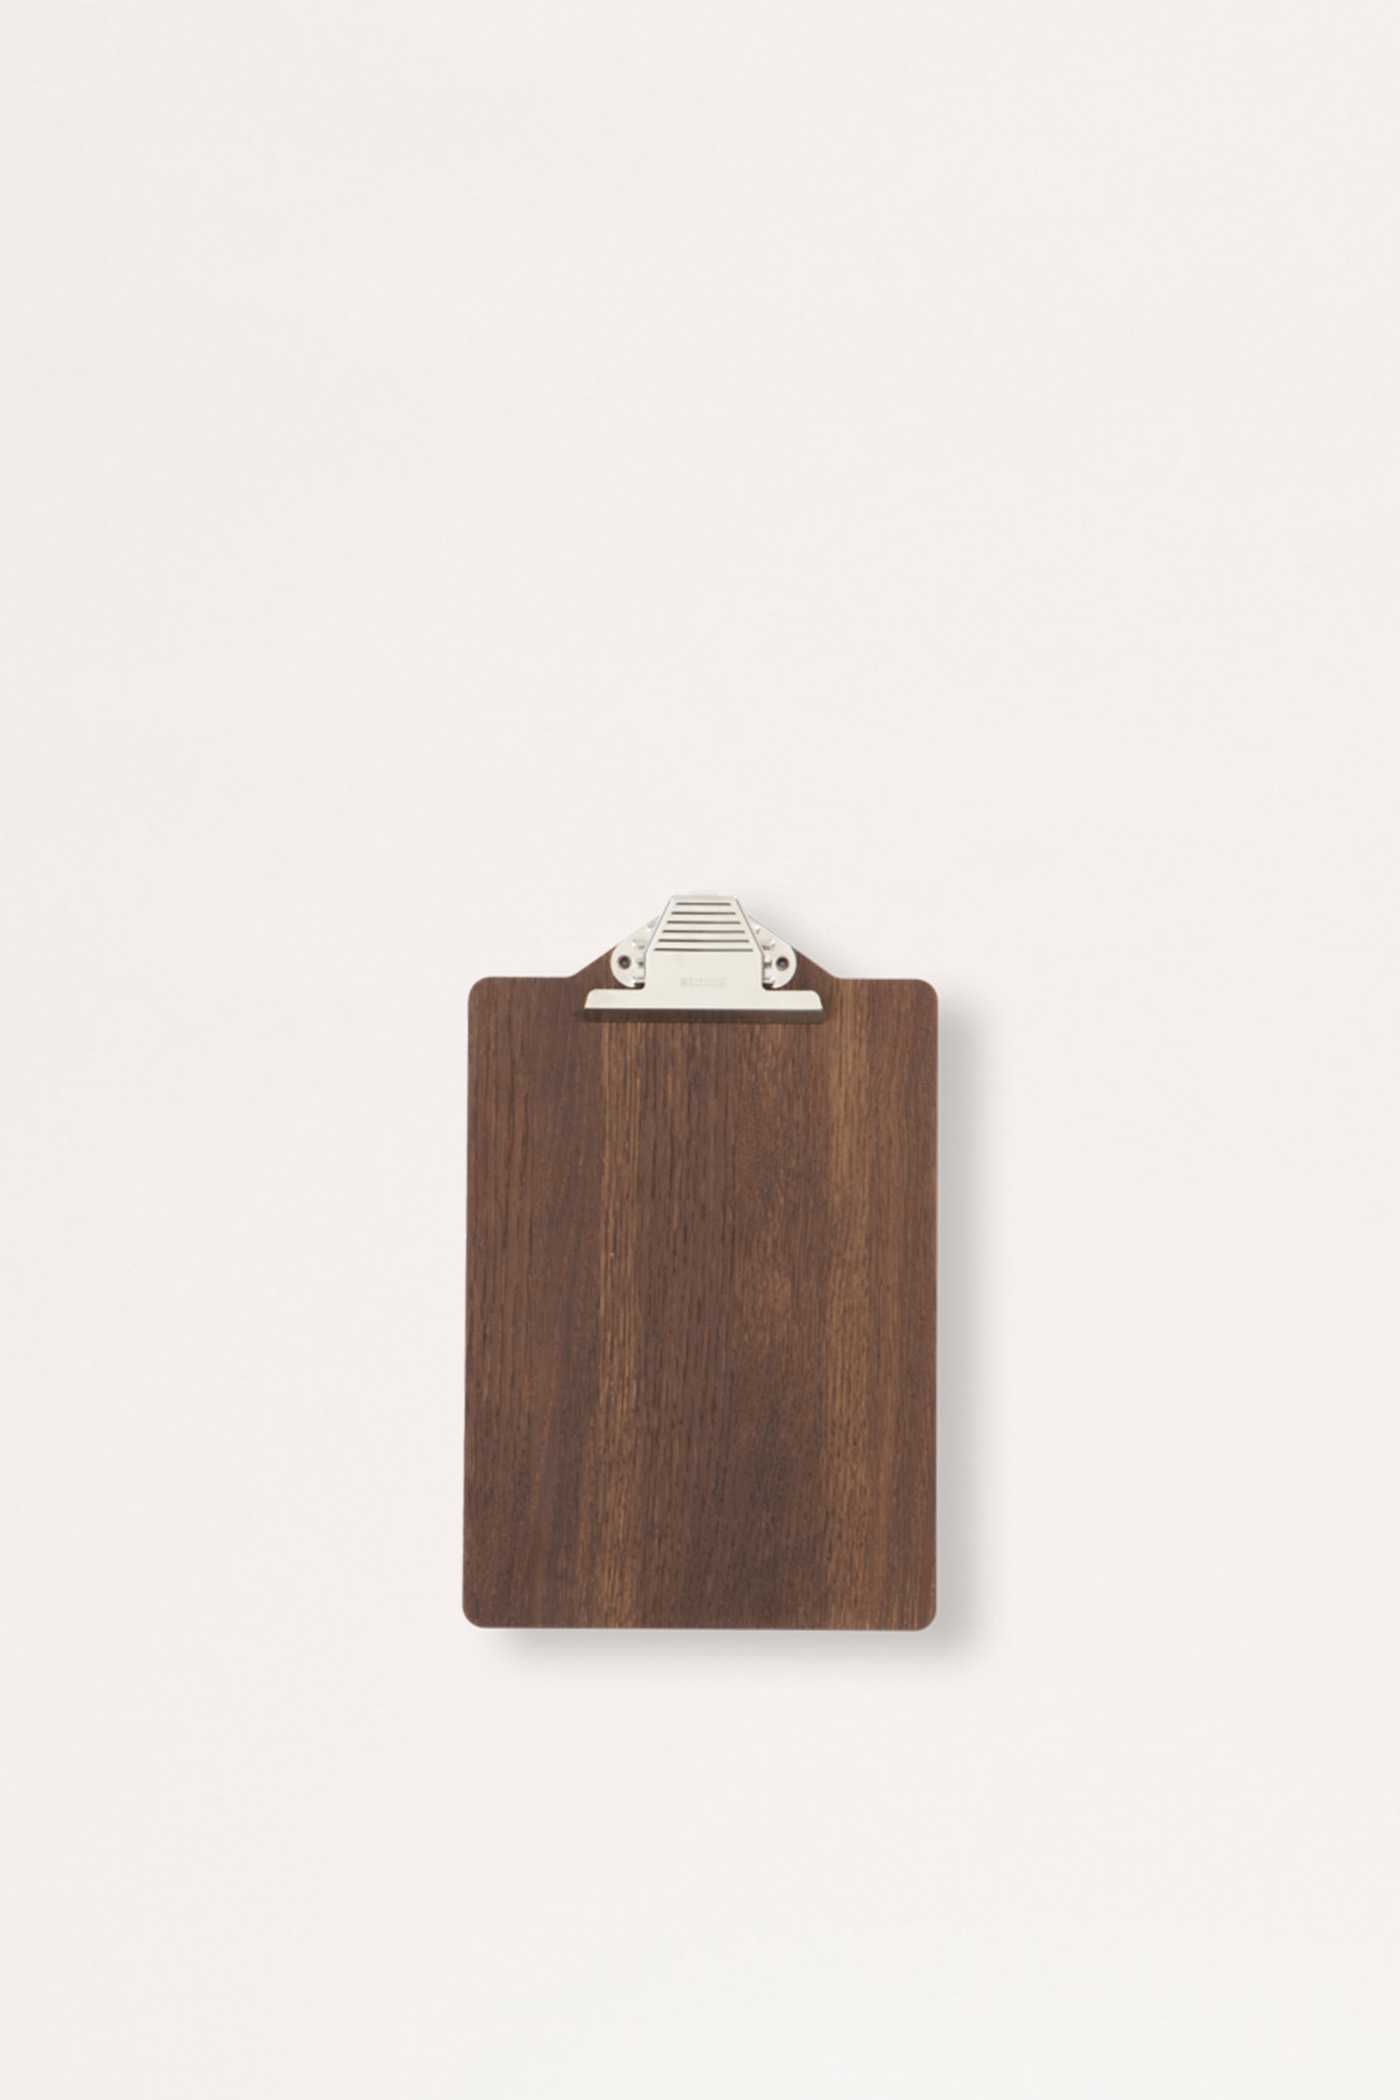 Ferm Living A5 Clipboard